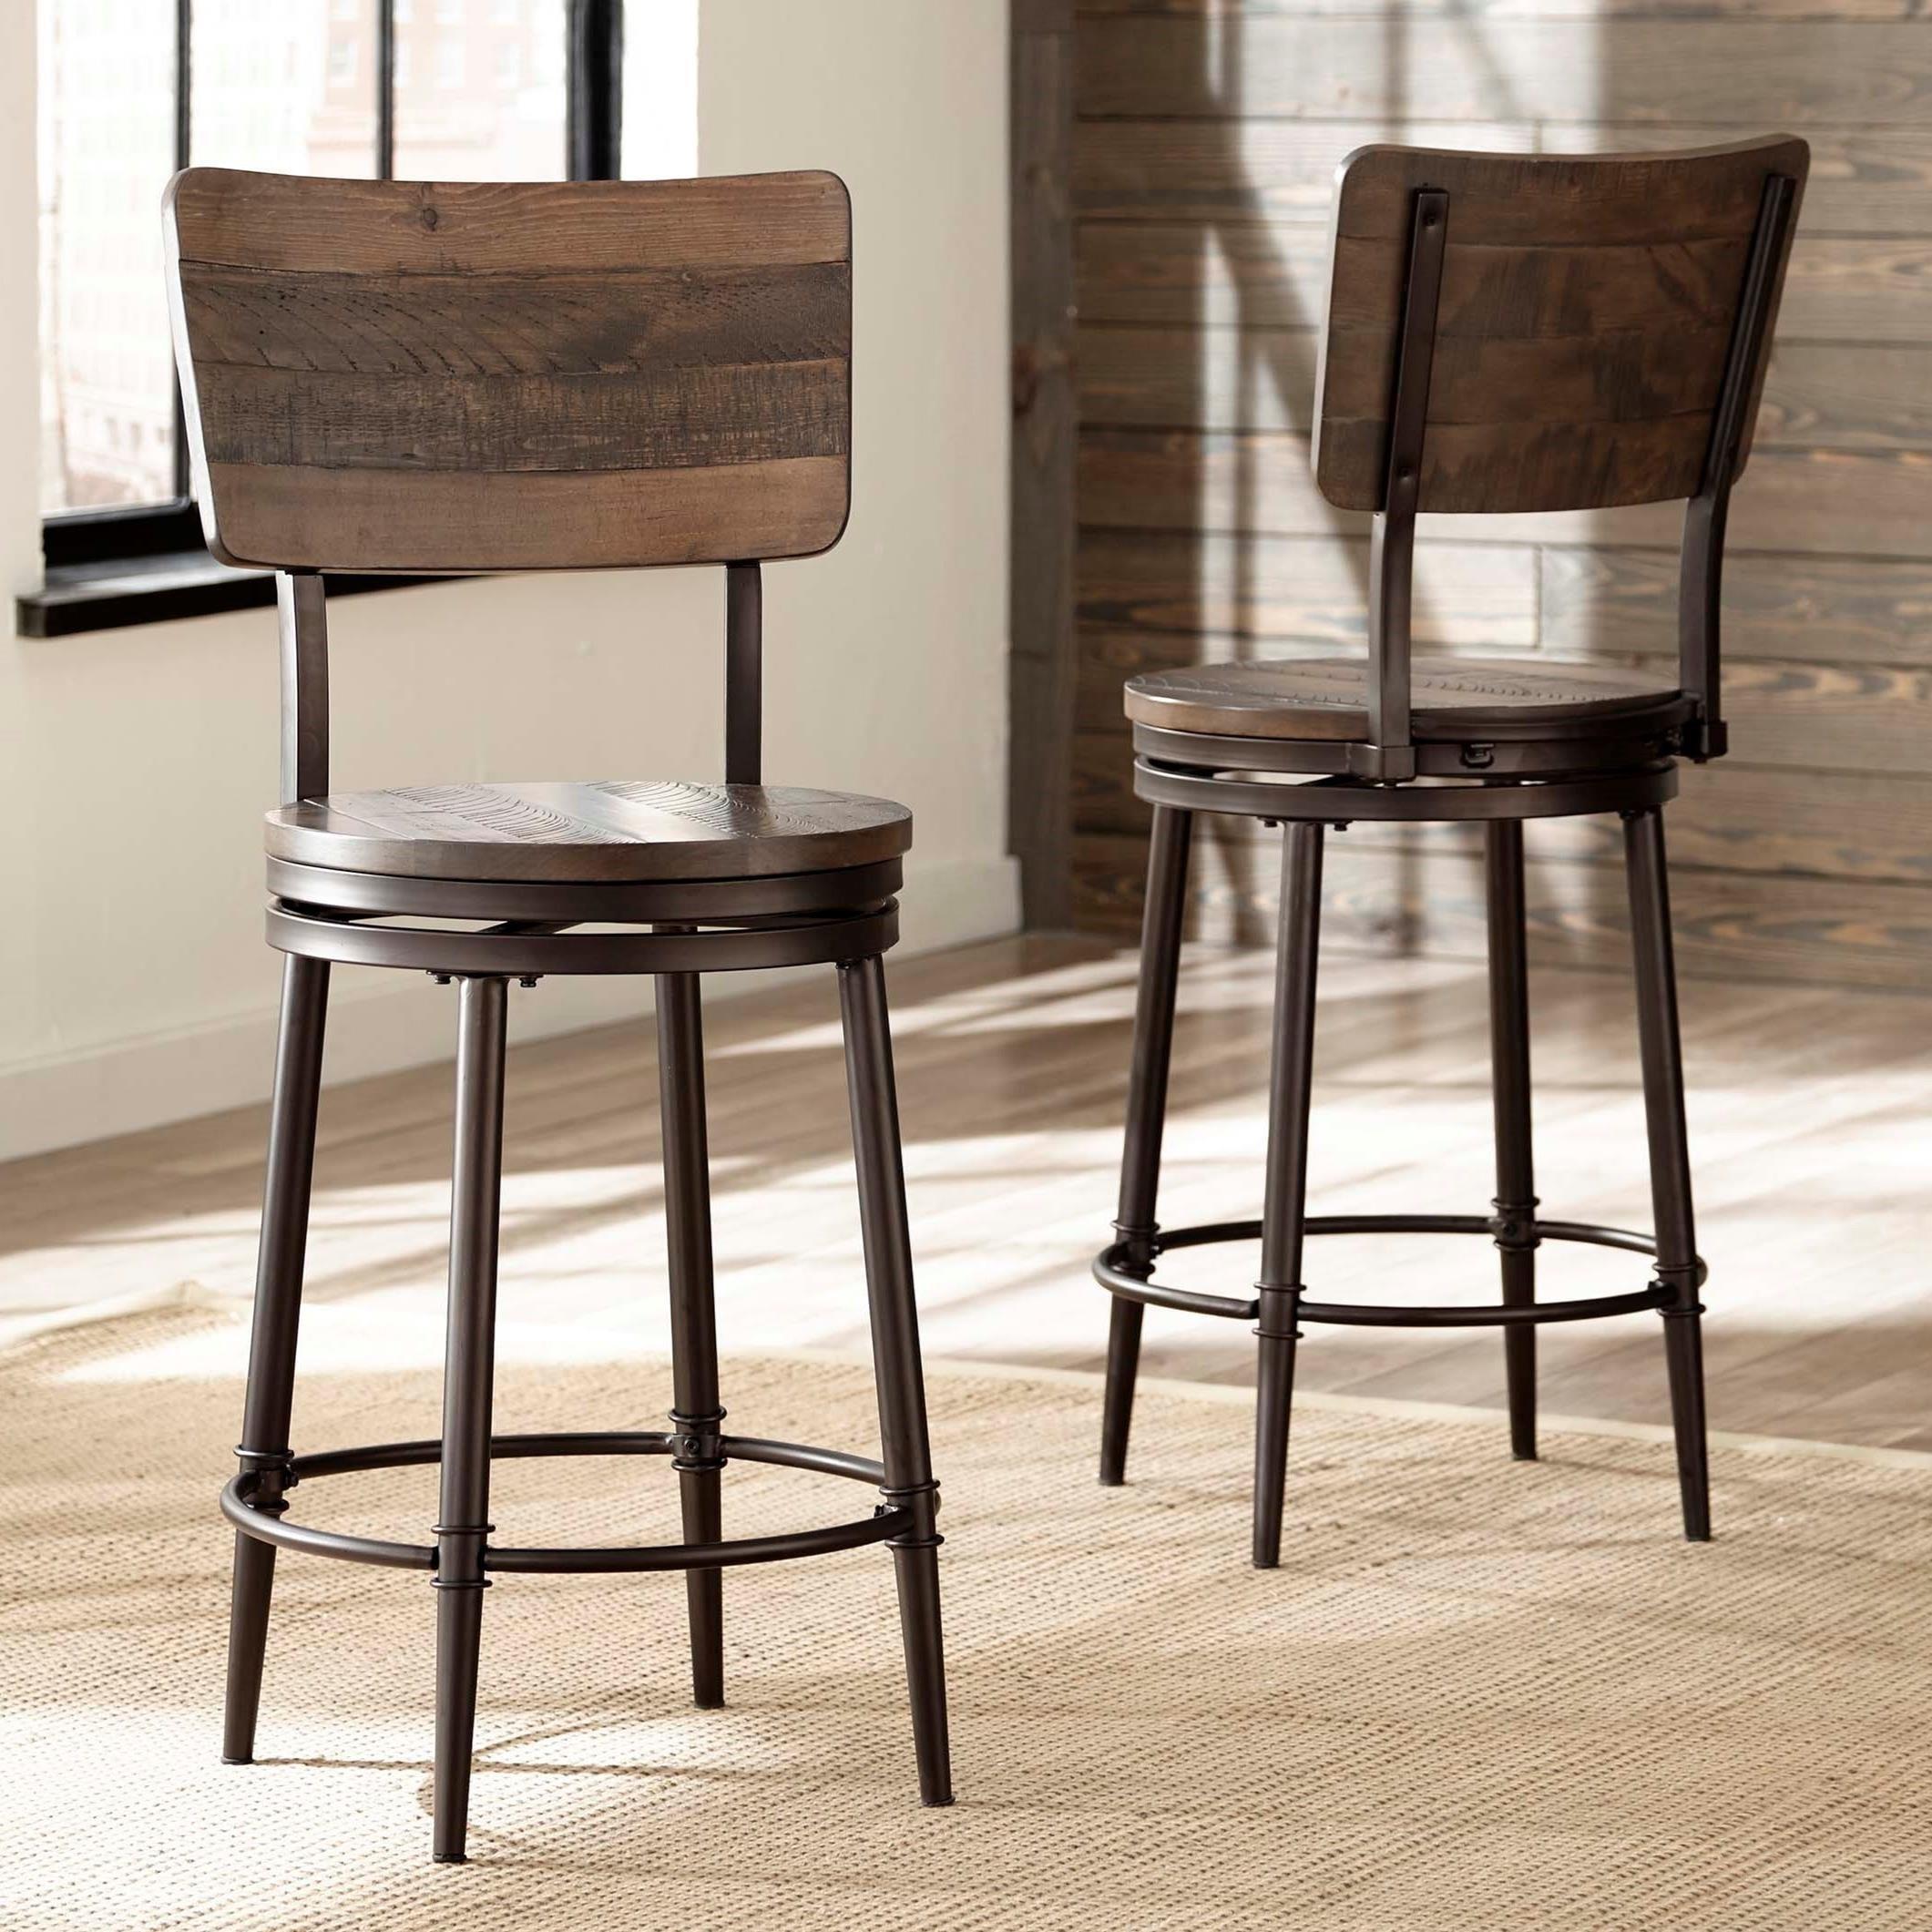 Hillsdale metal stools swivel counter stool with